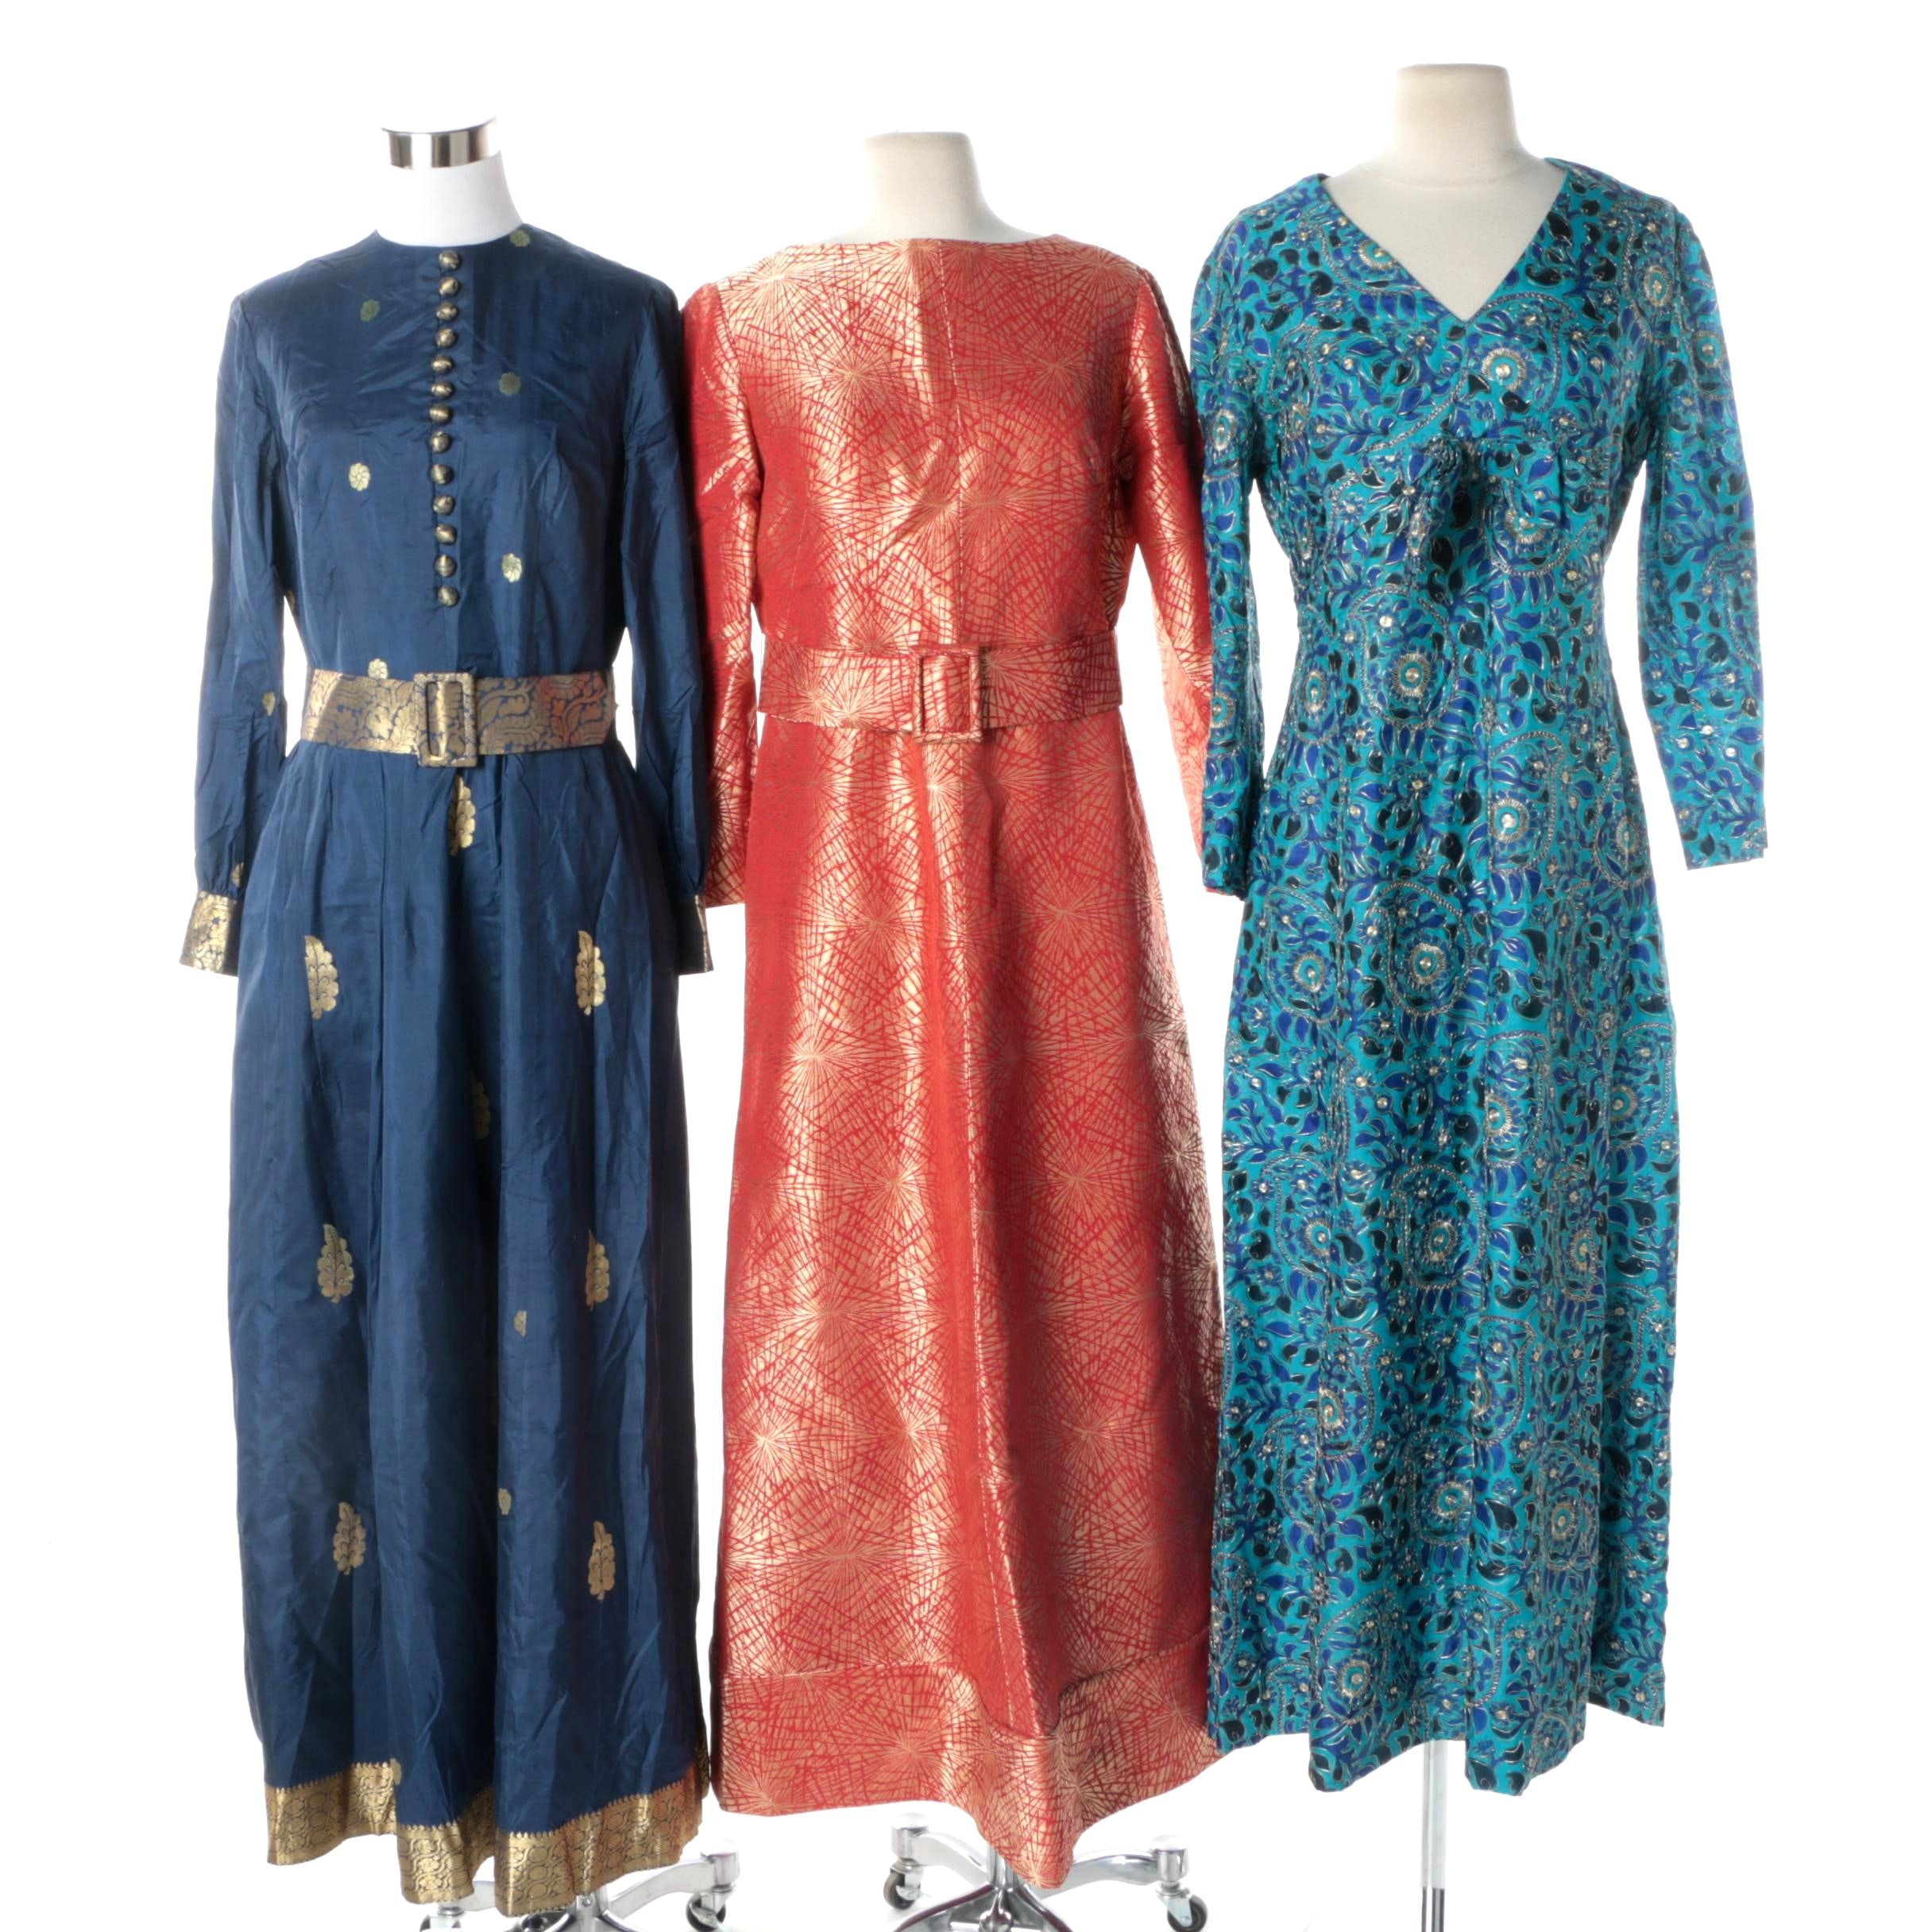 Women's Indian-Inspired Silk Dresses